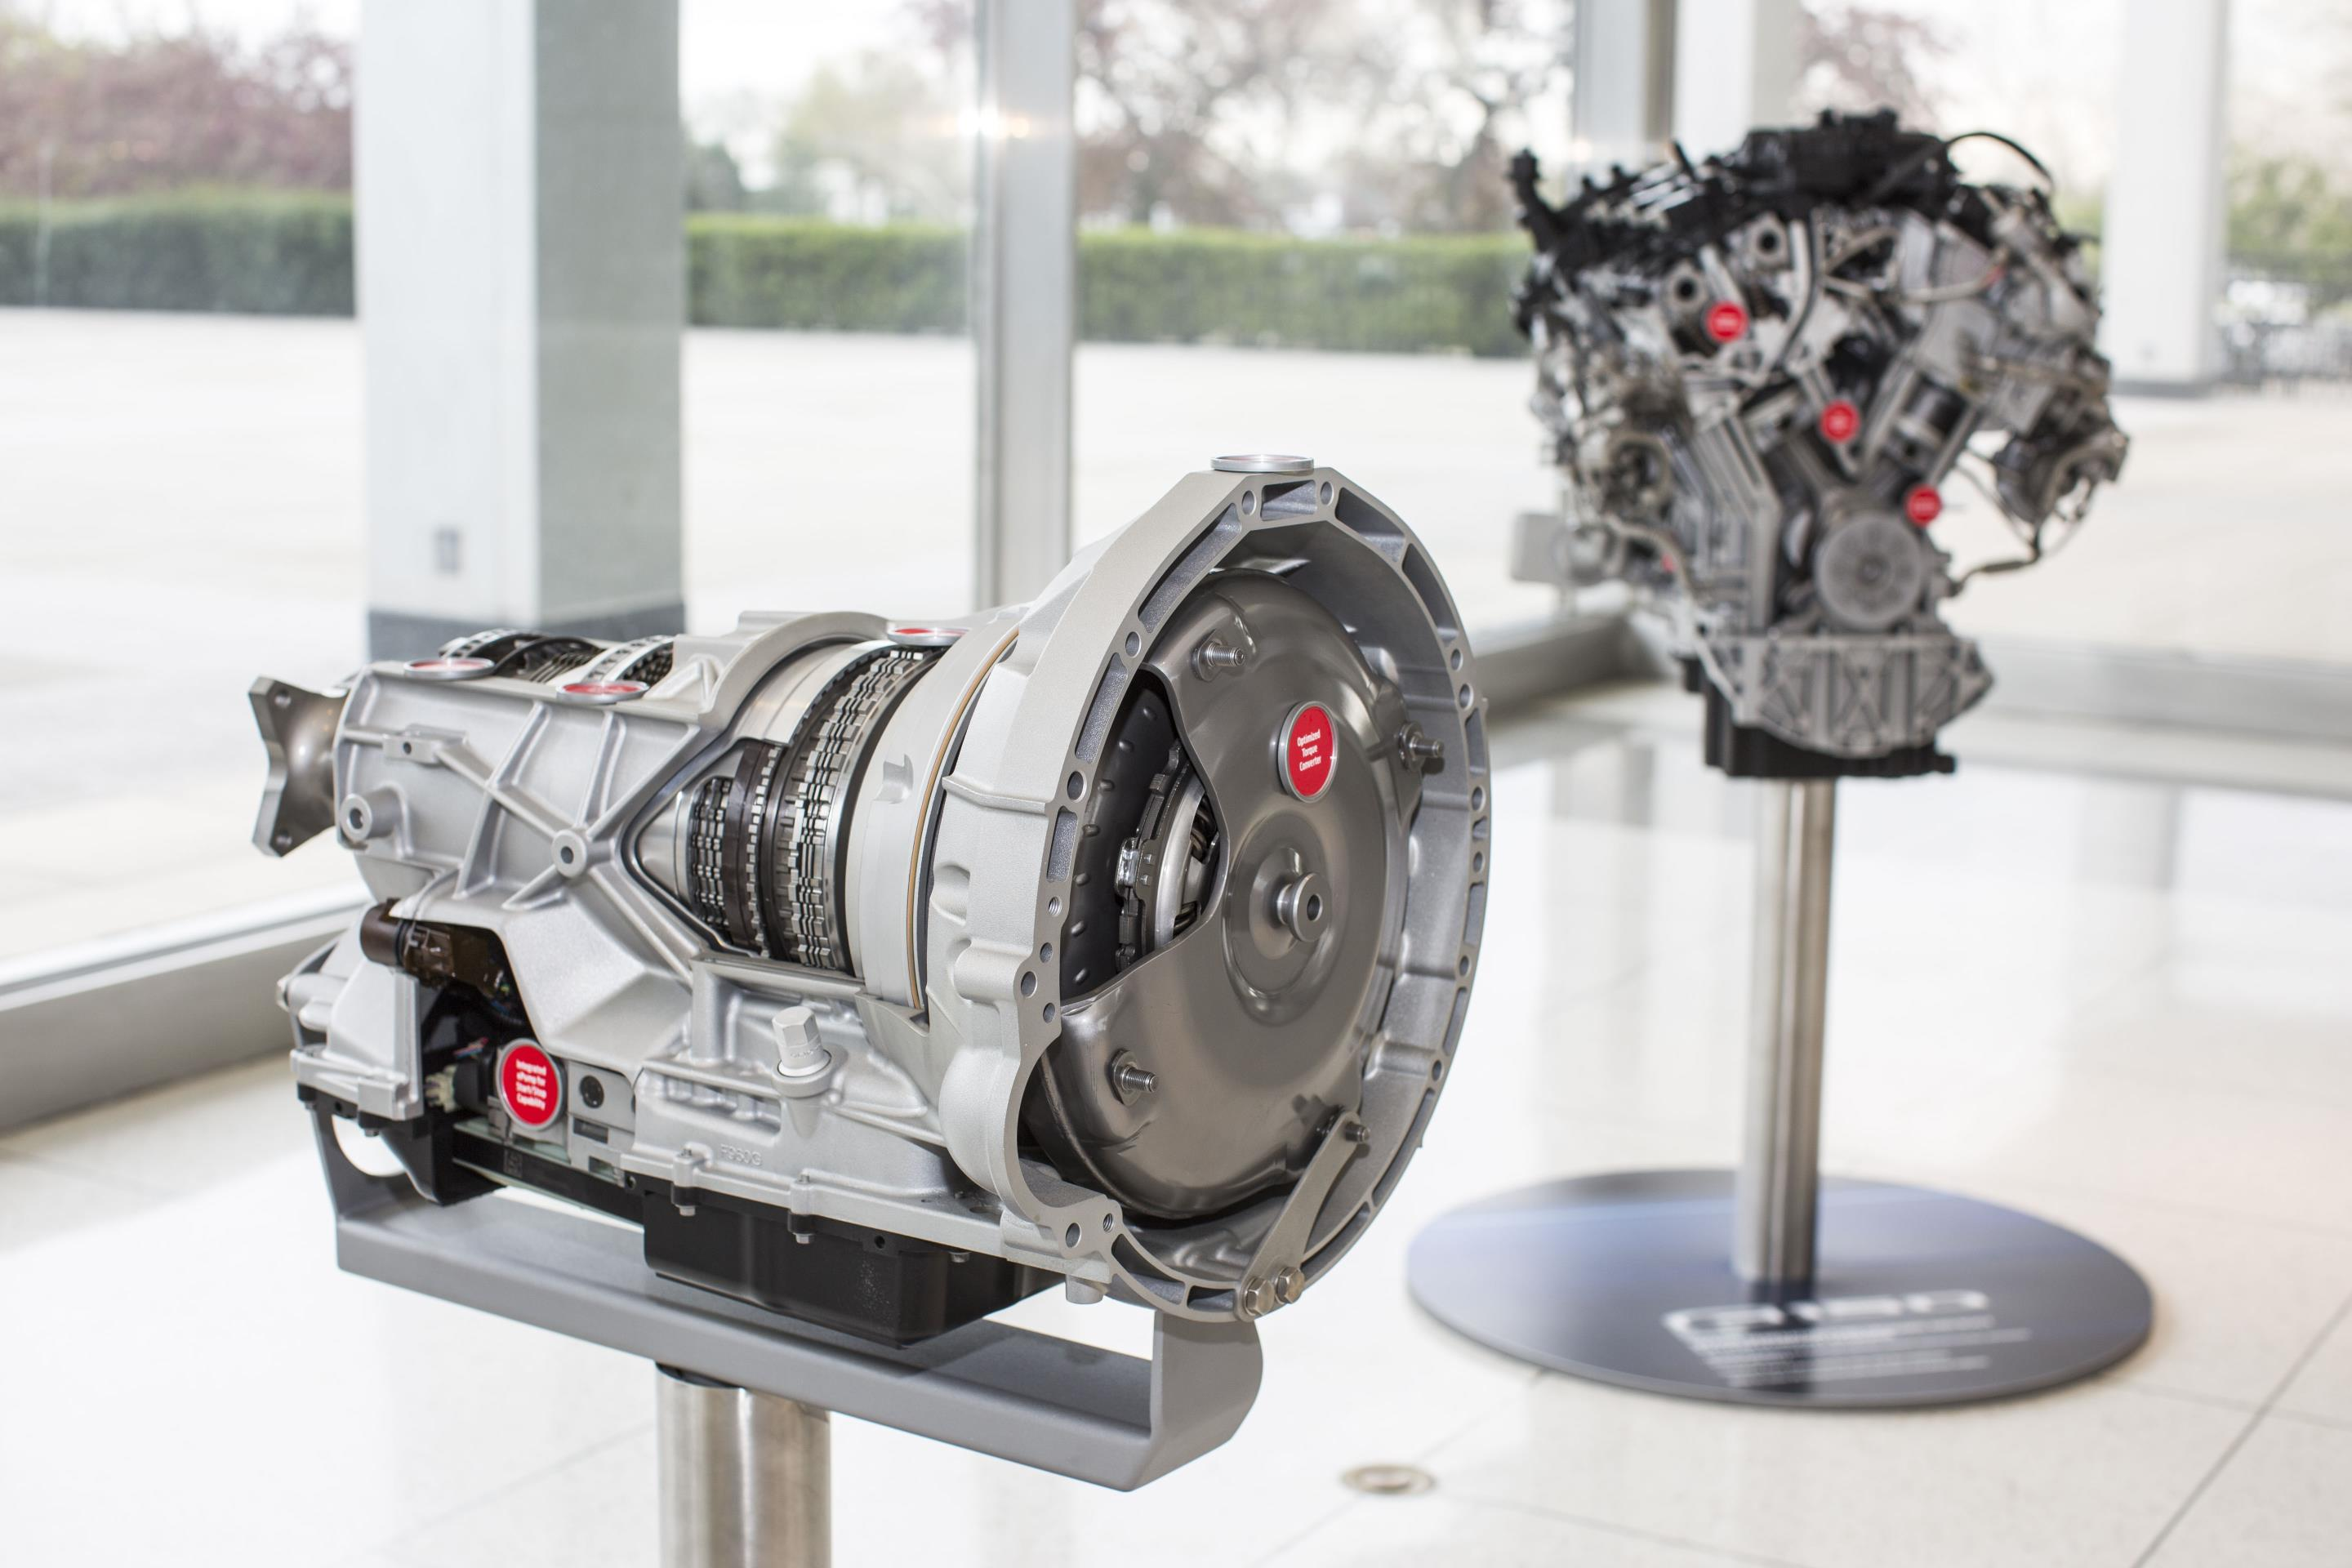 Ford 10 Sd Transmission And Second Generation 3 5 Ecoboost V6